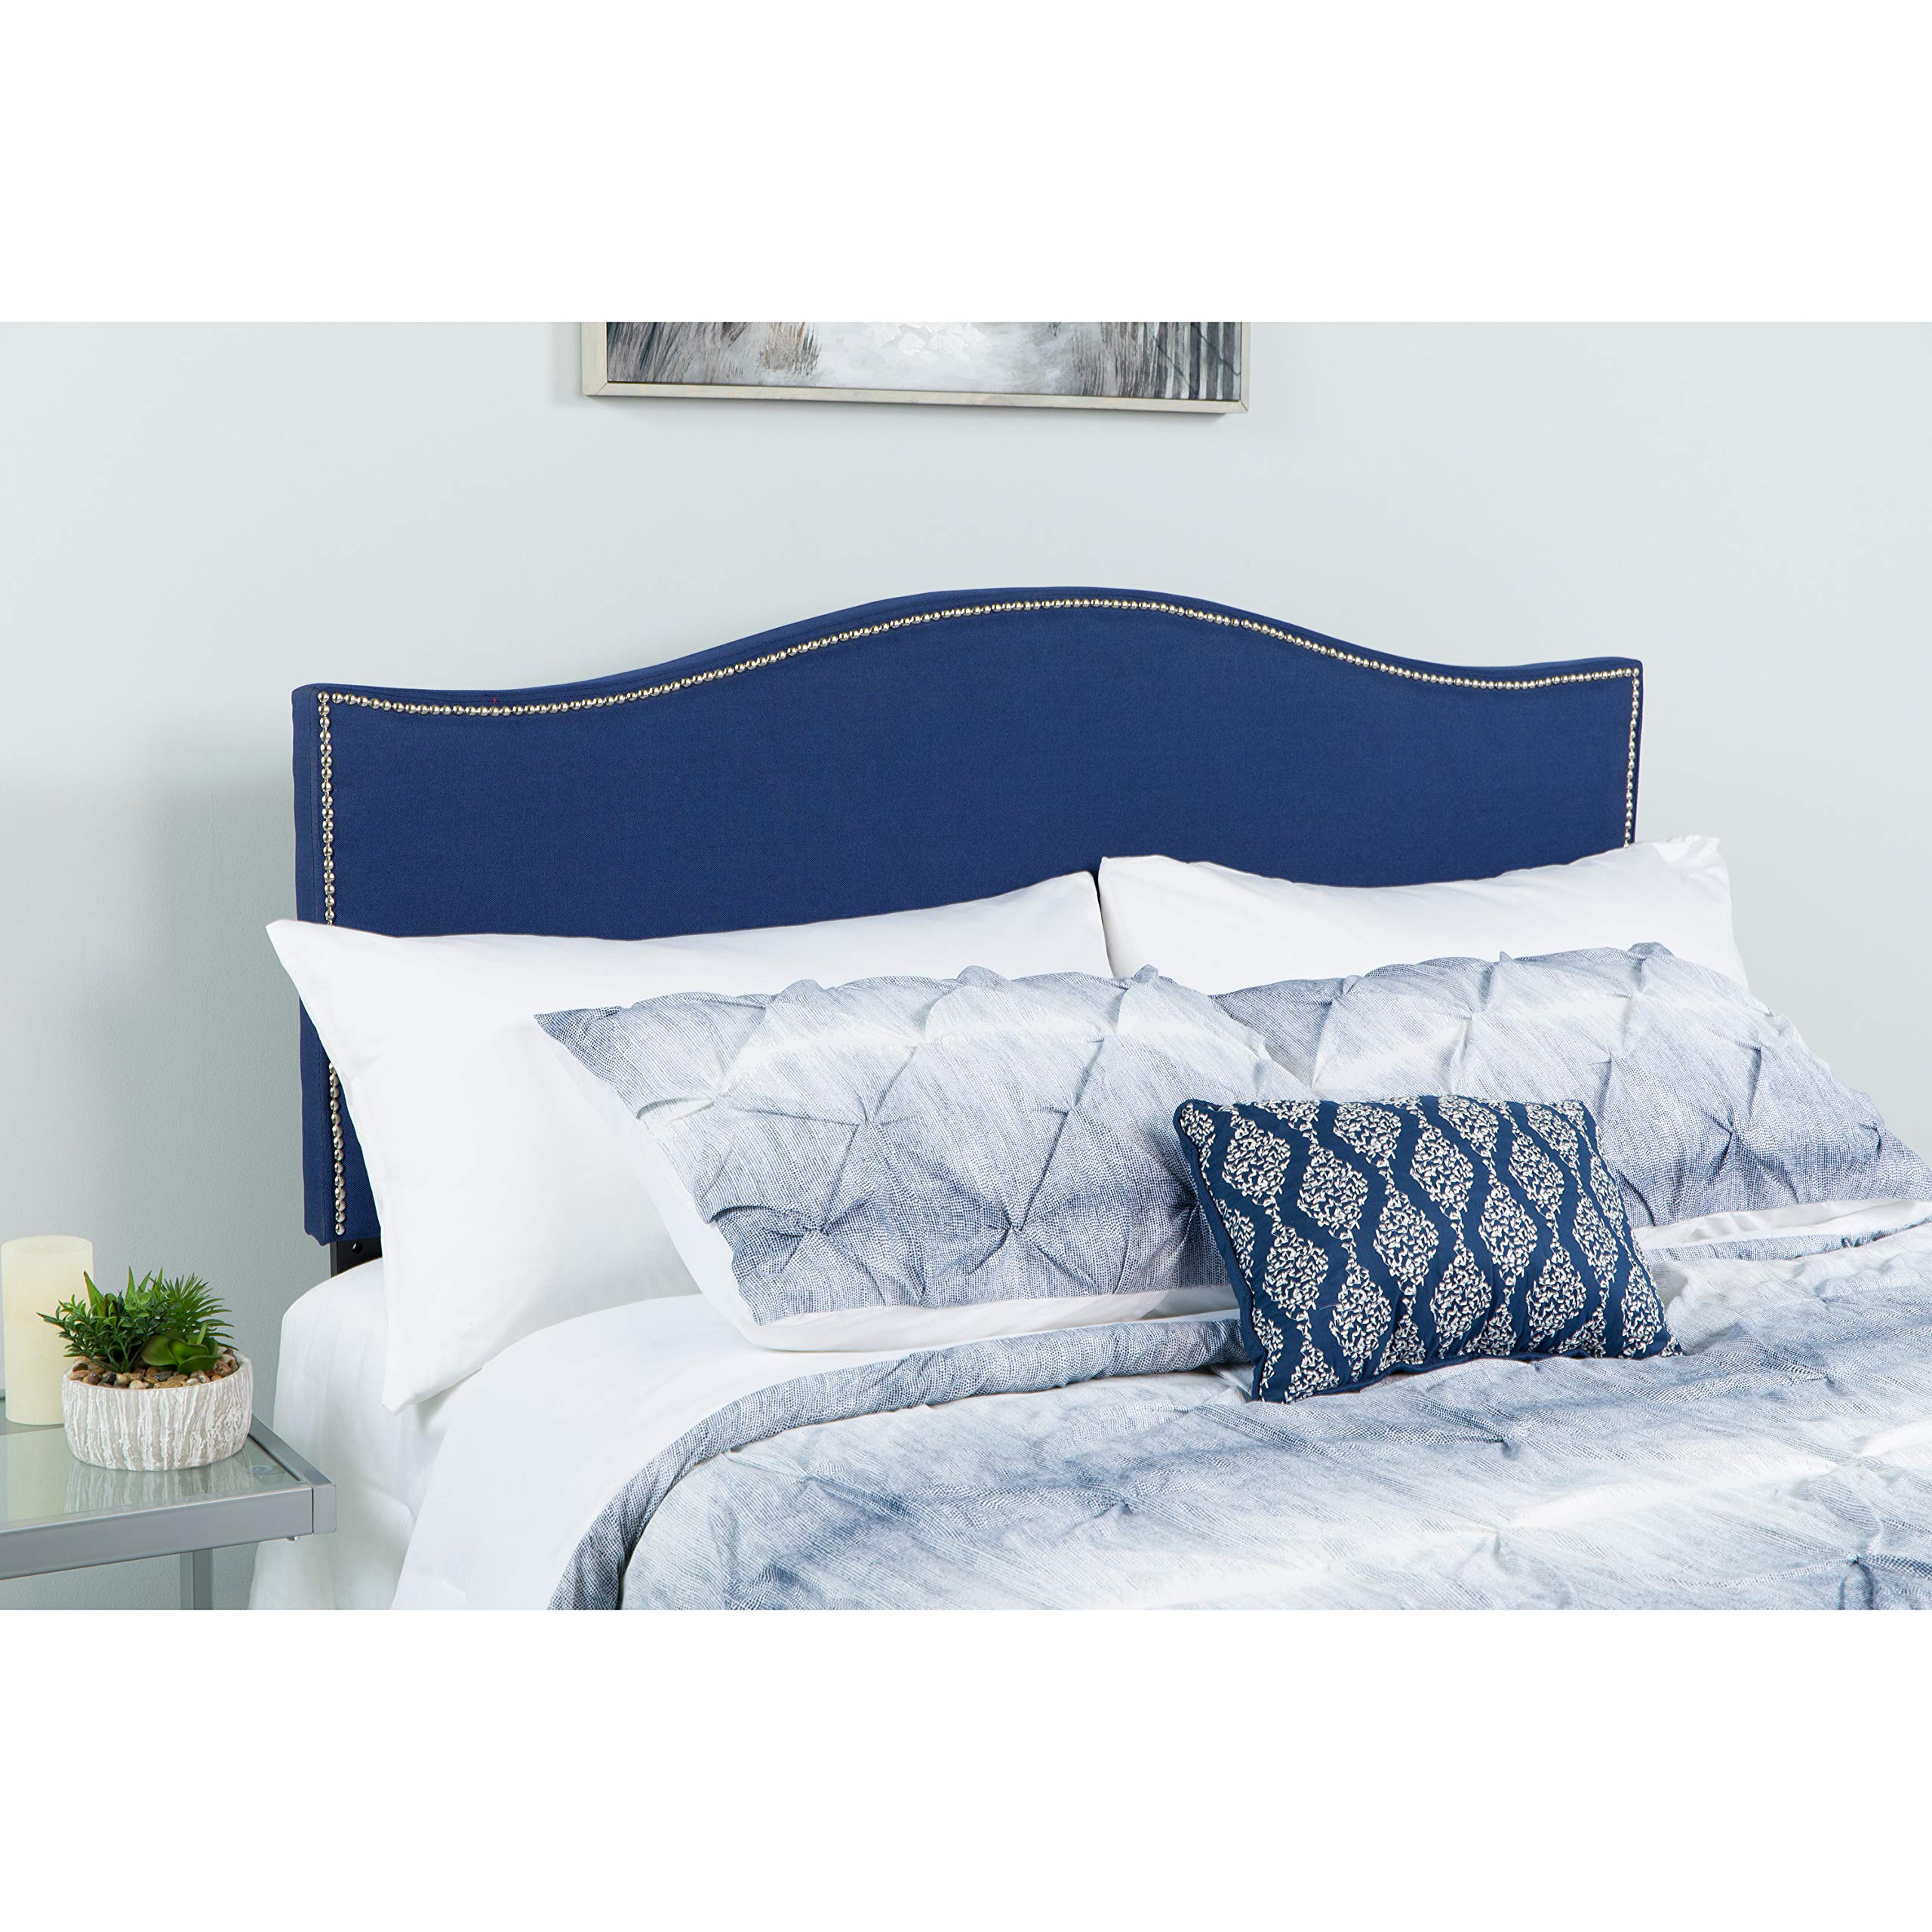 Flash Furniture Lexington Upholstered Full Size Headboard with Accent Nail Trim in Navy Fabric